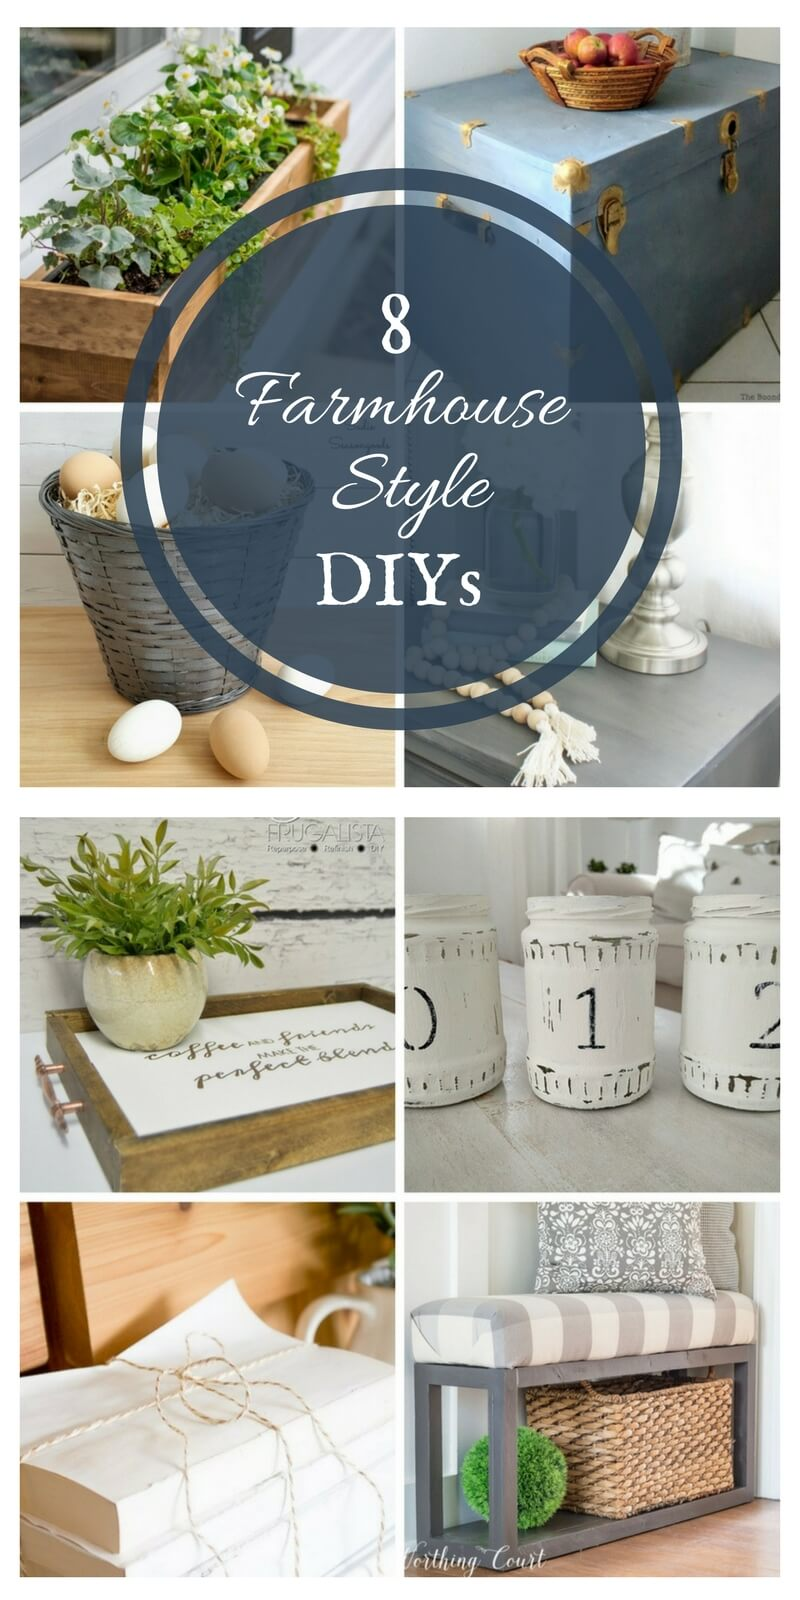 8 Farmhouse Style DIY Projects | Merry Monday Link Party